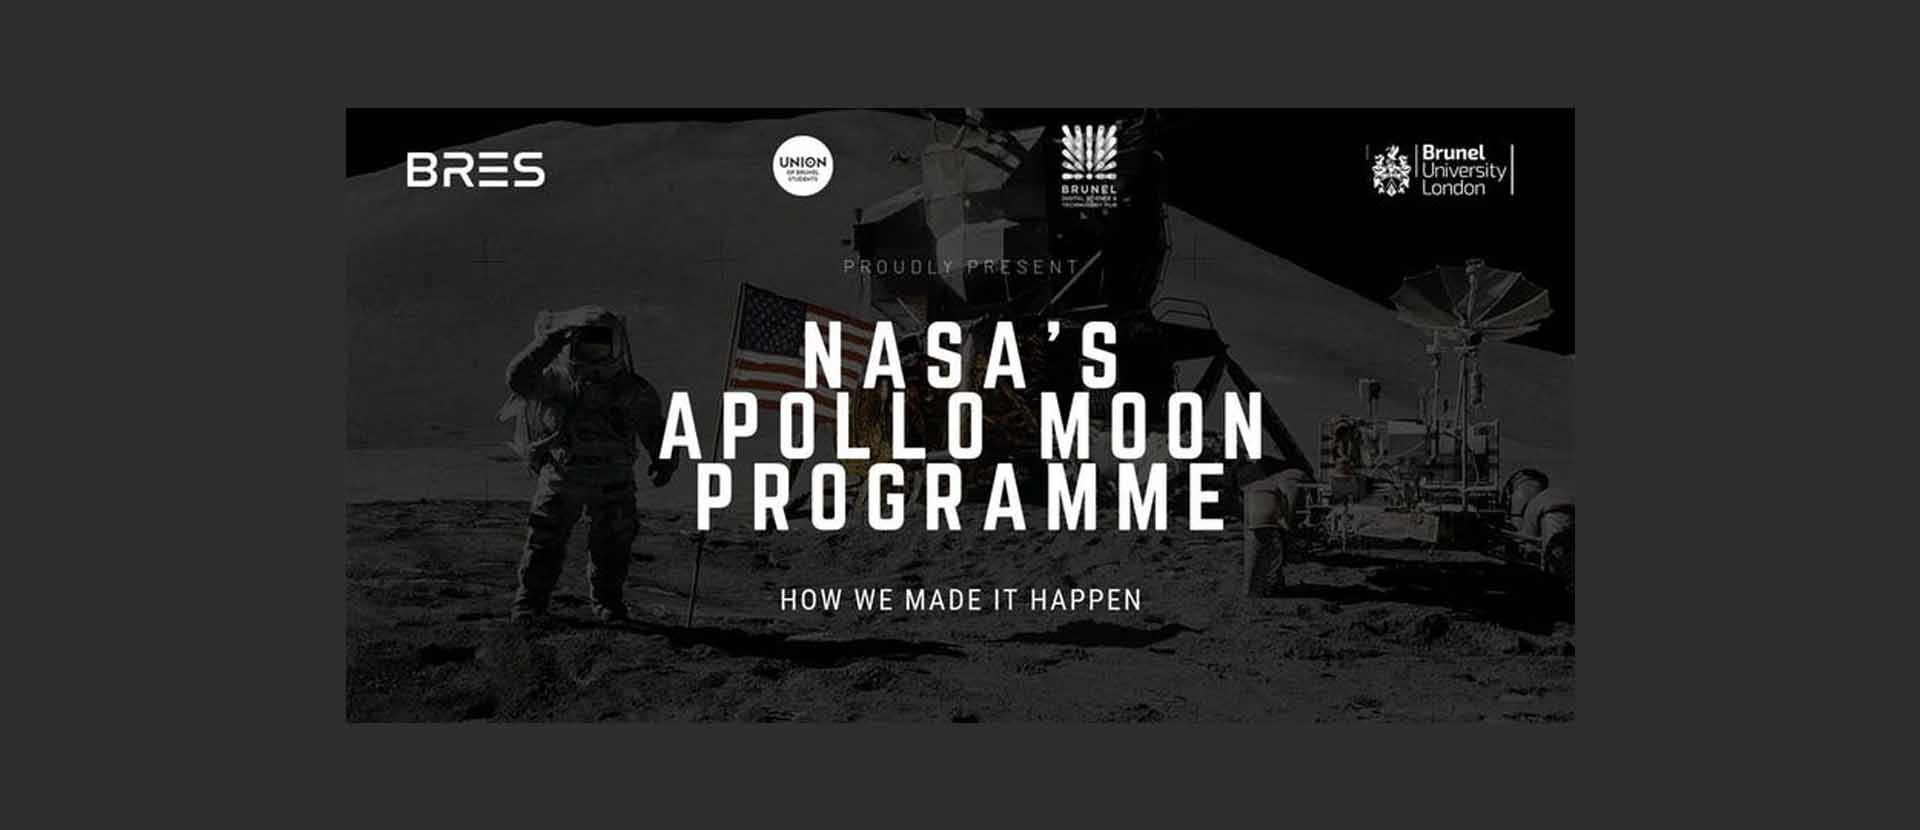 image of Nasa's Apollo Moon Programme: How we made it happen - Dr. David Baker